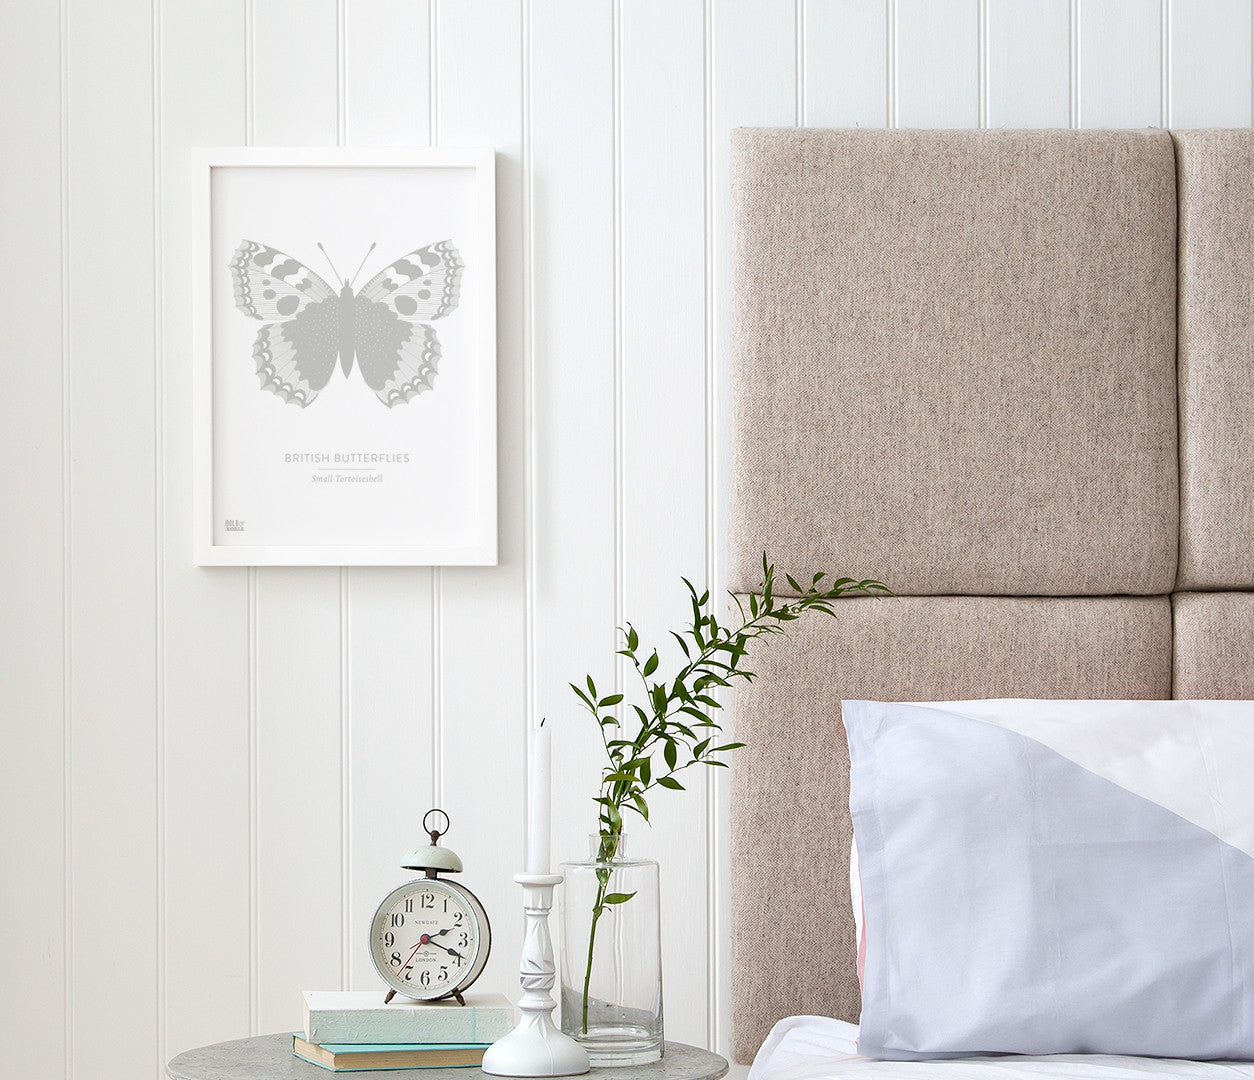 Wall Art Ideas: Economical Screen Prints, British Butterflies Wall Posters in Grey